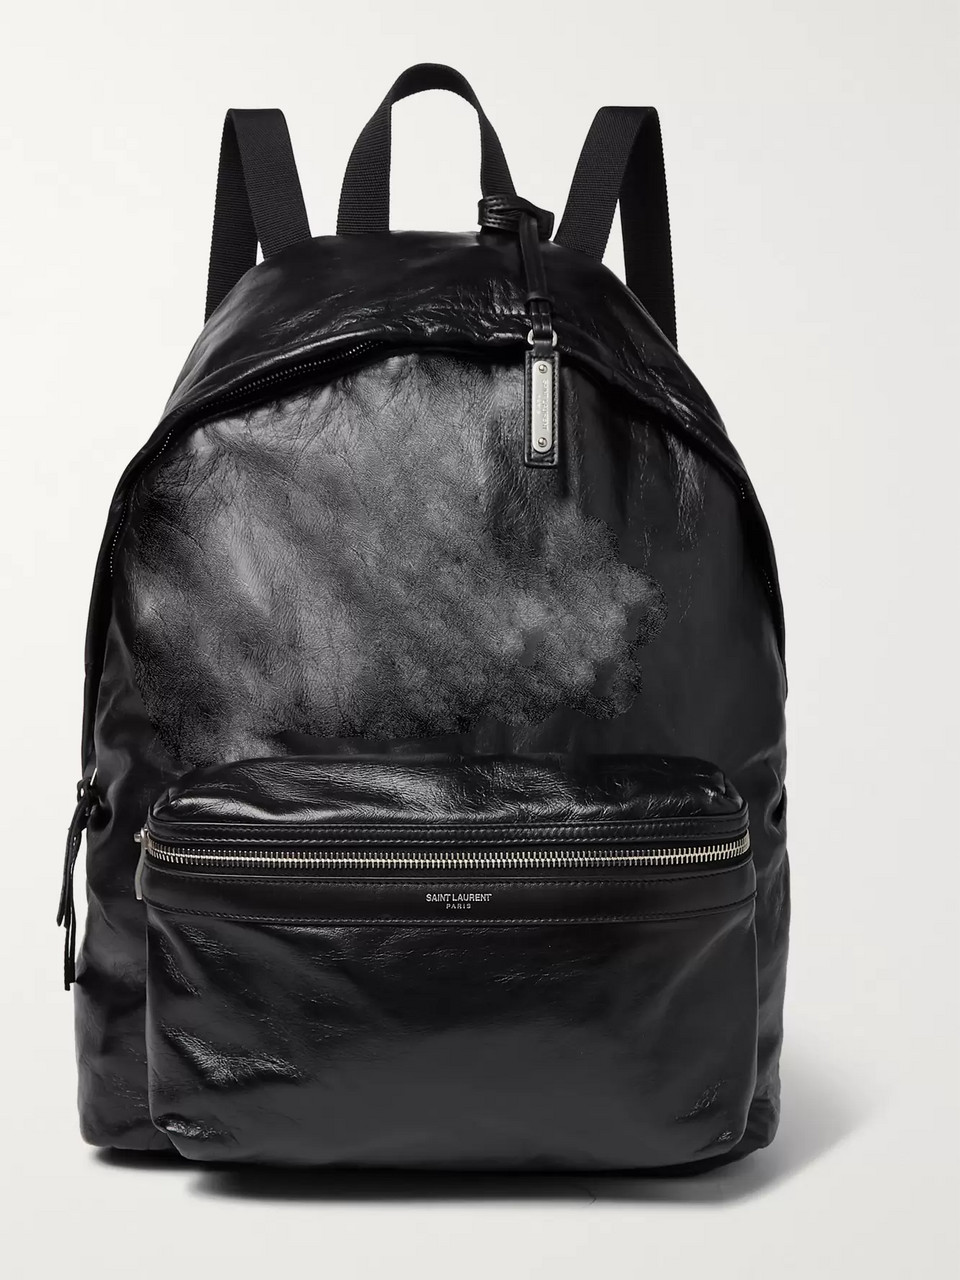 SAINT LAURENT Polished Textured-Leather Backpack